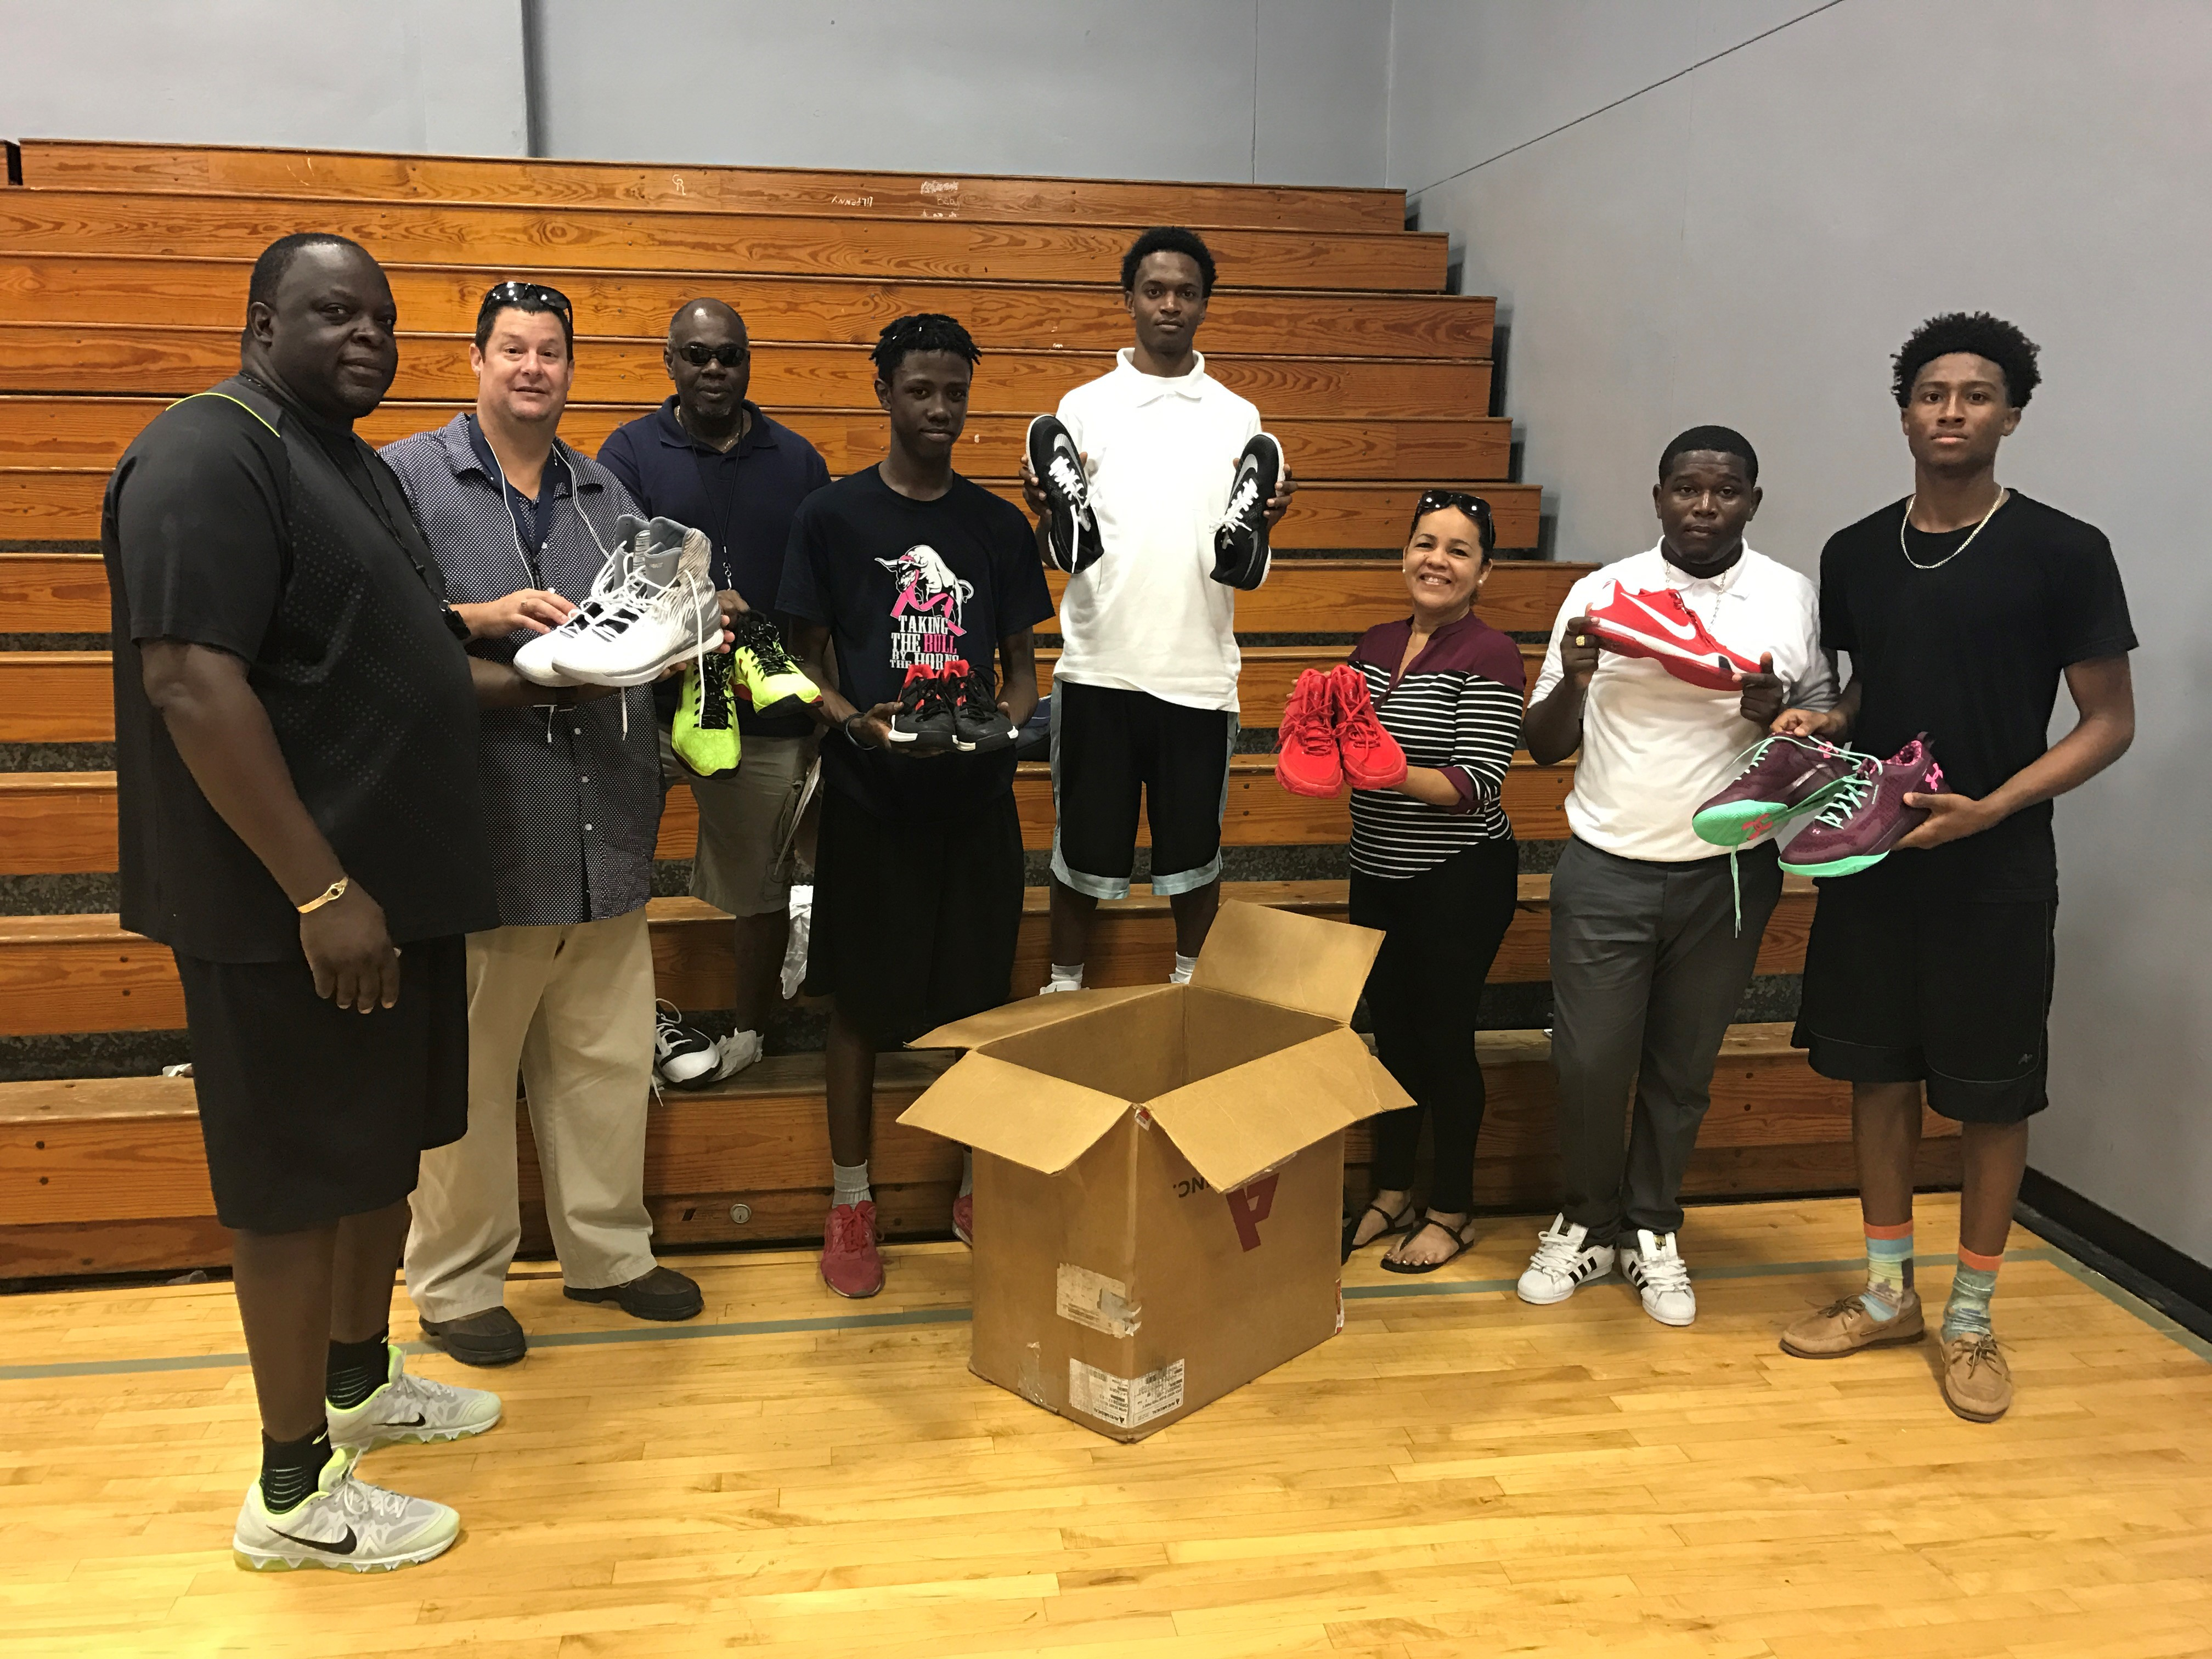 Donations of sneakers were given to V.I. students.